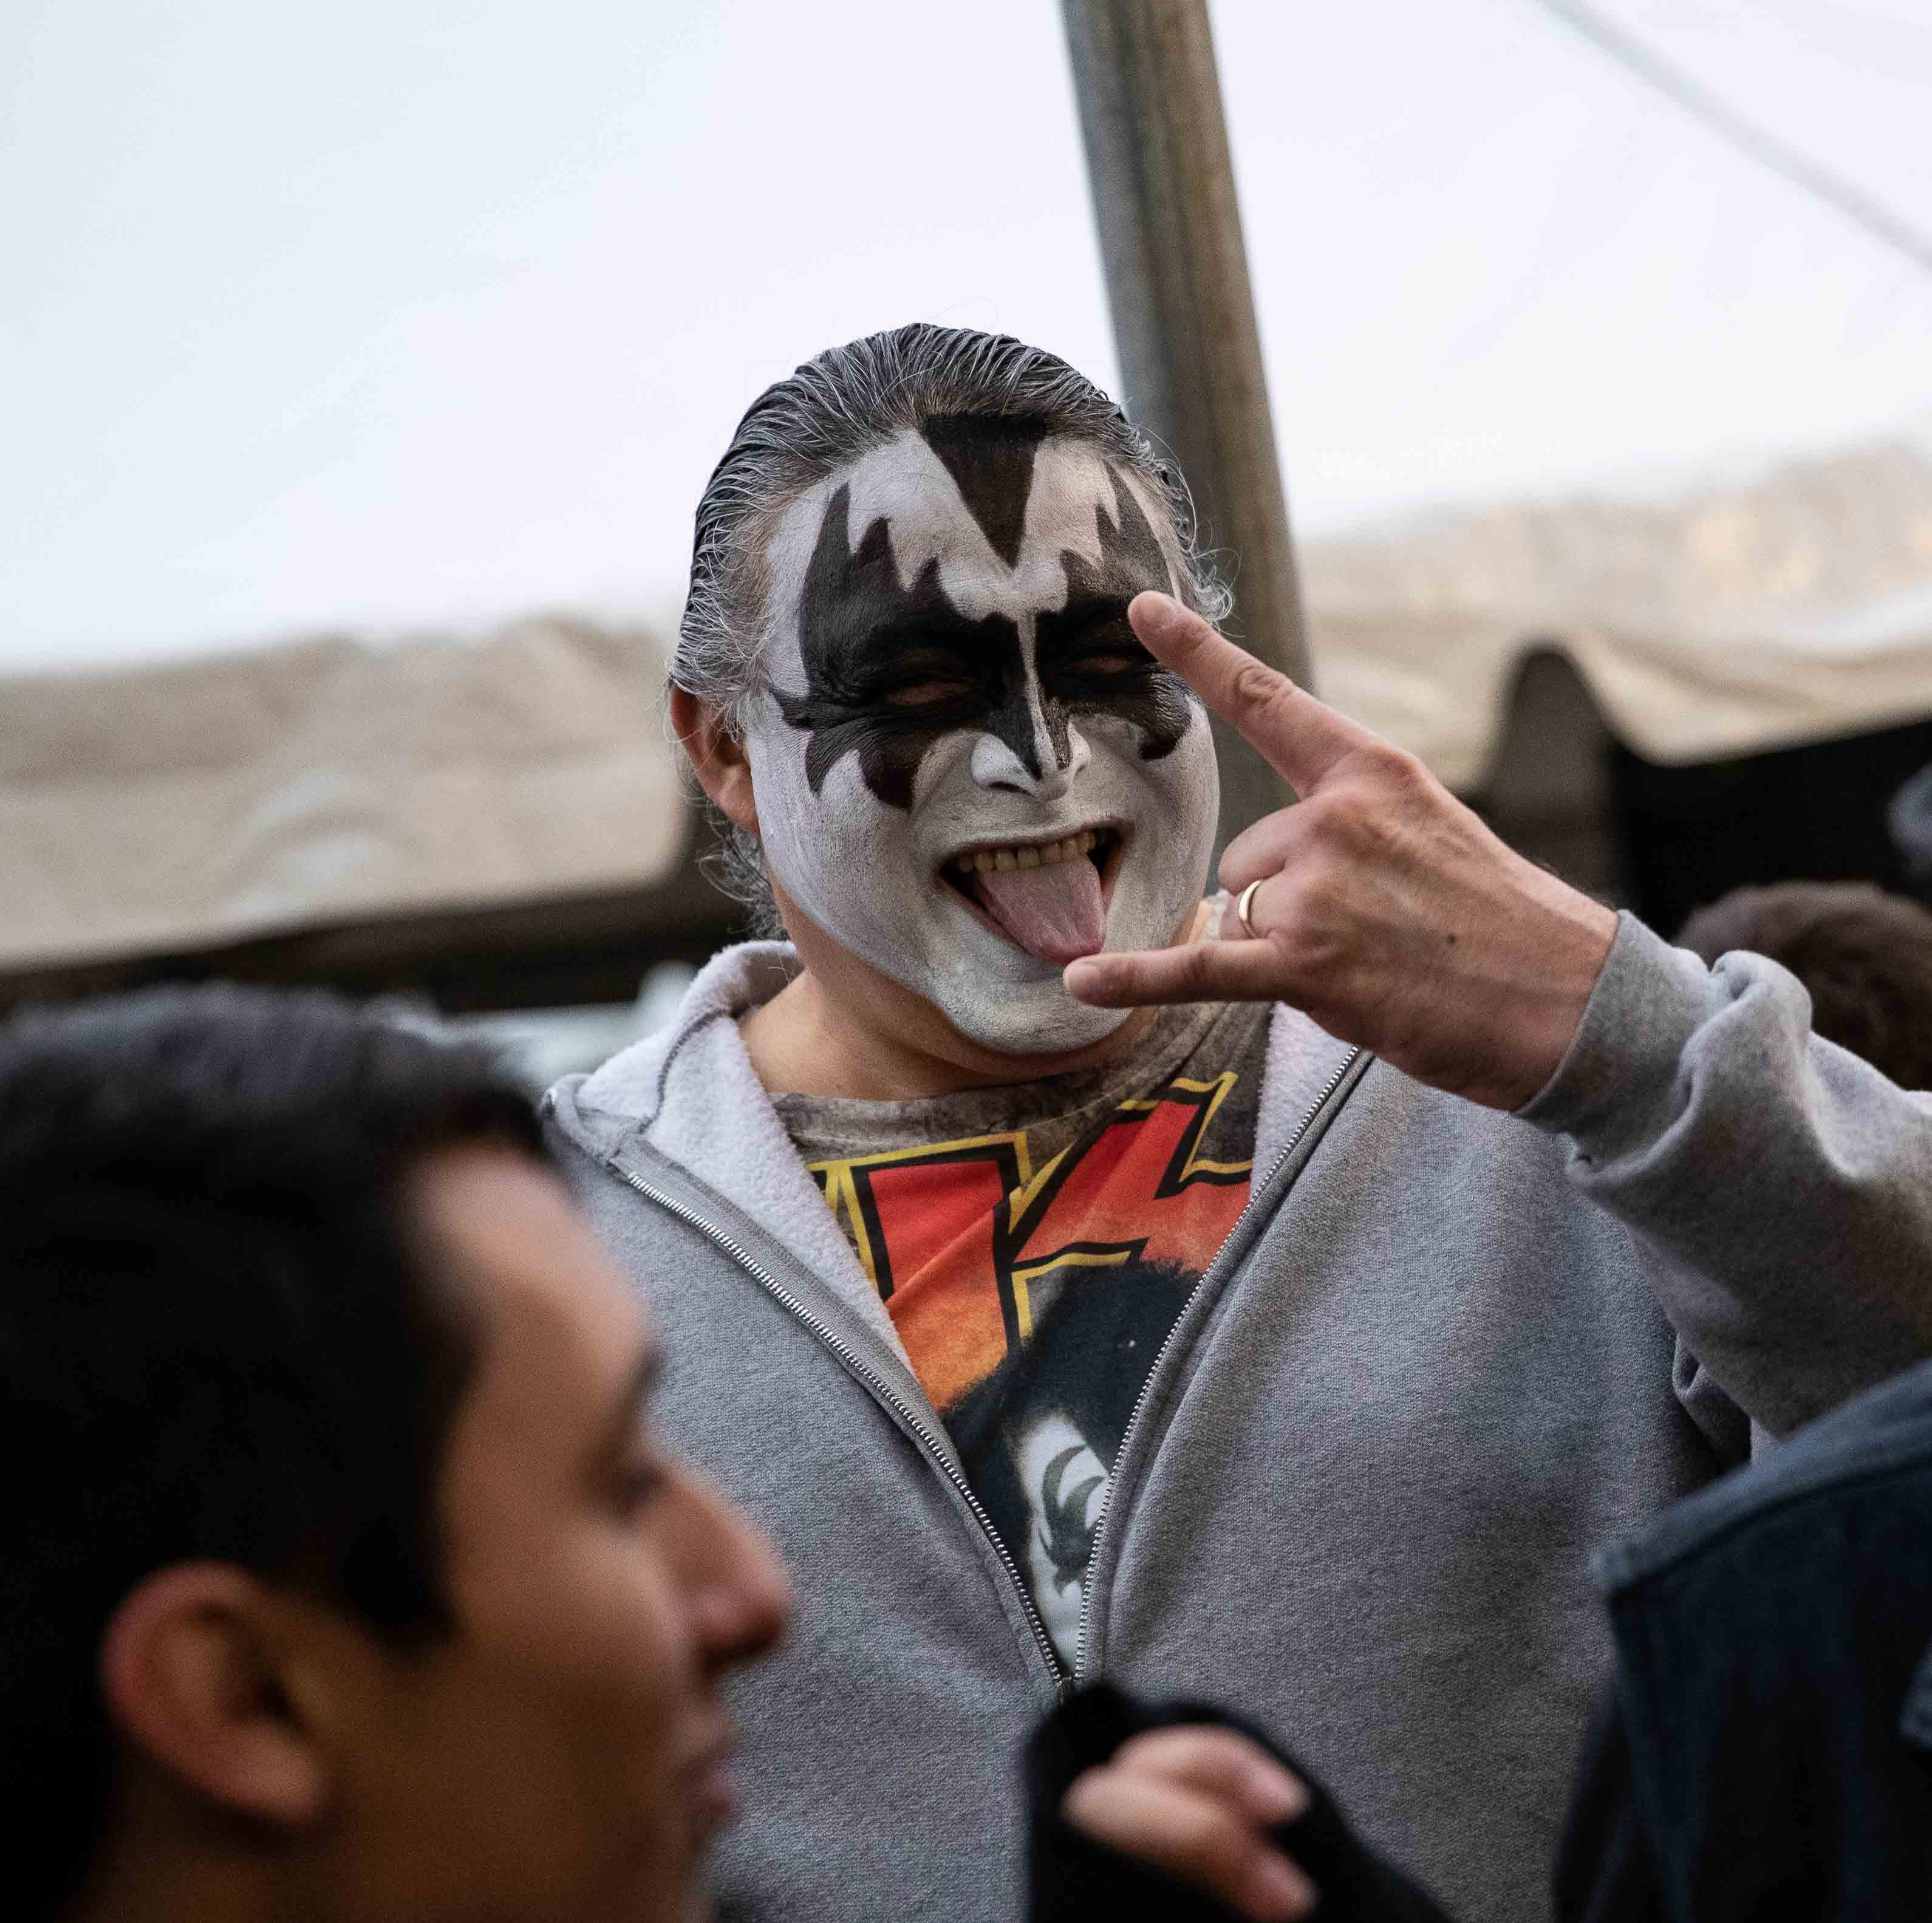 KISS fans rocked and rolled all night at KISS Farewell Tour in Corpus Christi